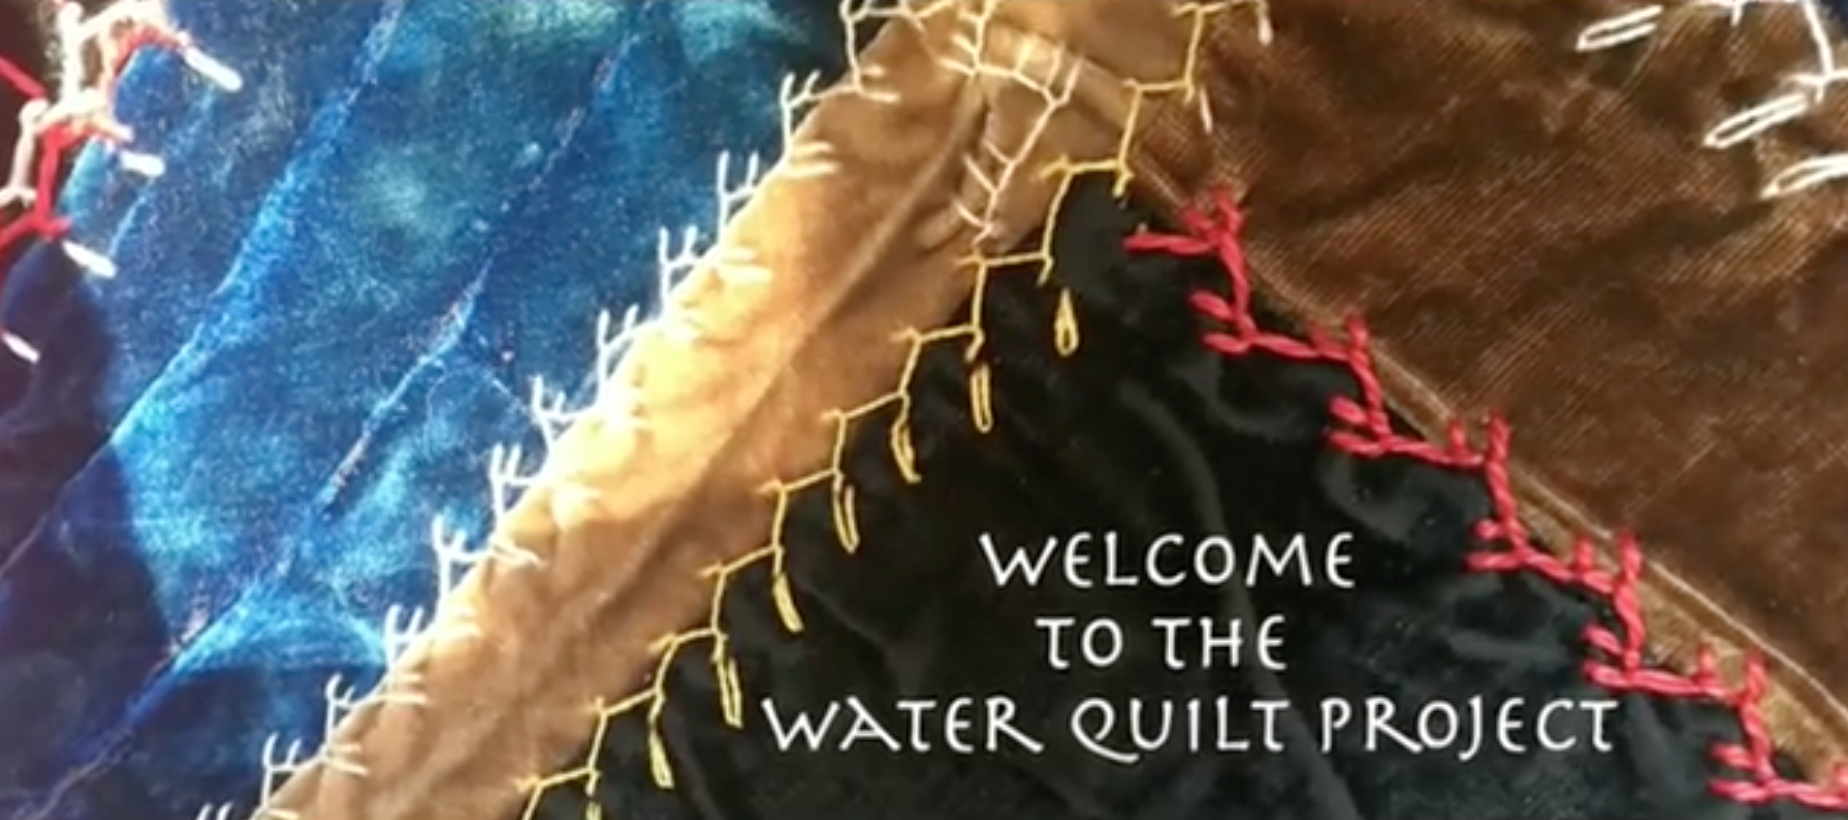 Join the Water Quilt Project